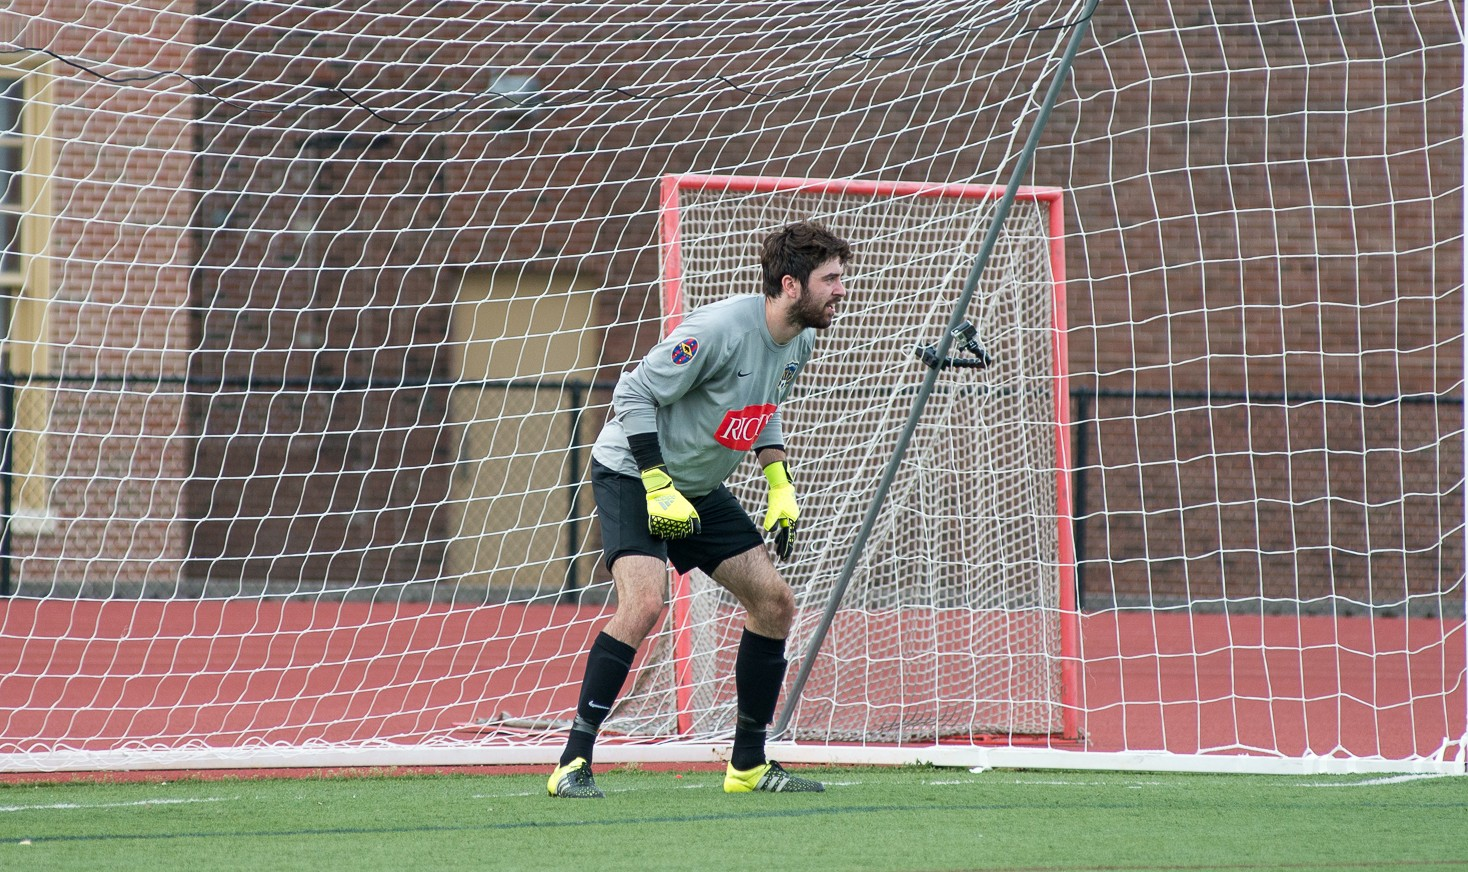 Louisville goalkeeper Nick Jeffs returned to the starting XI for FC Buffalo Sunday. (Matt Weinberg/Special to The News)